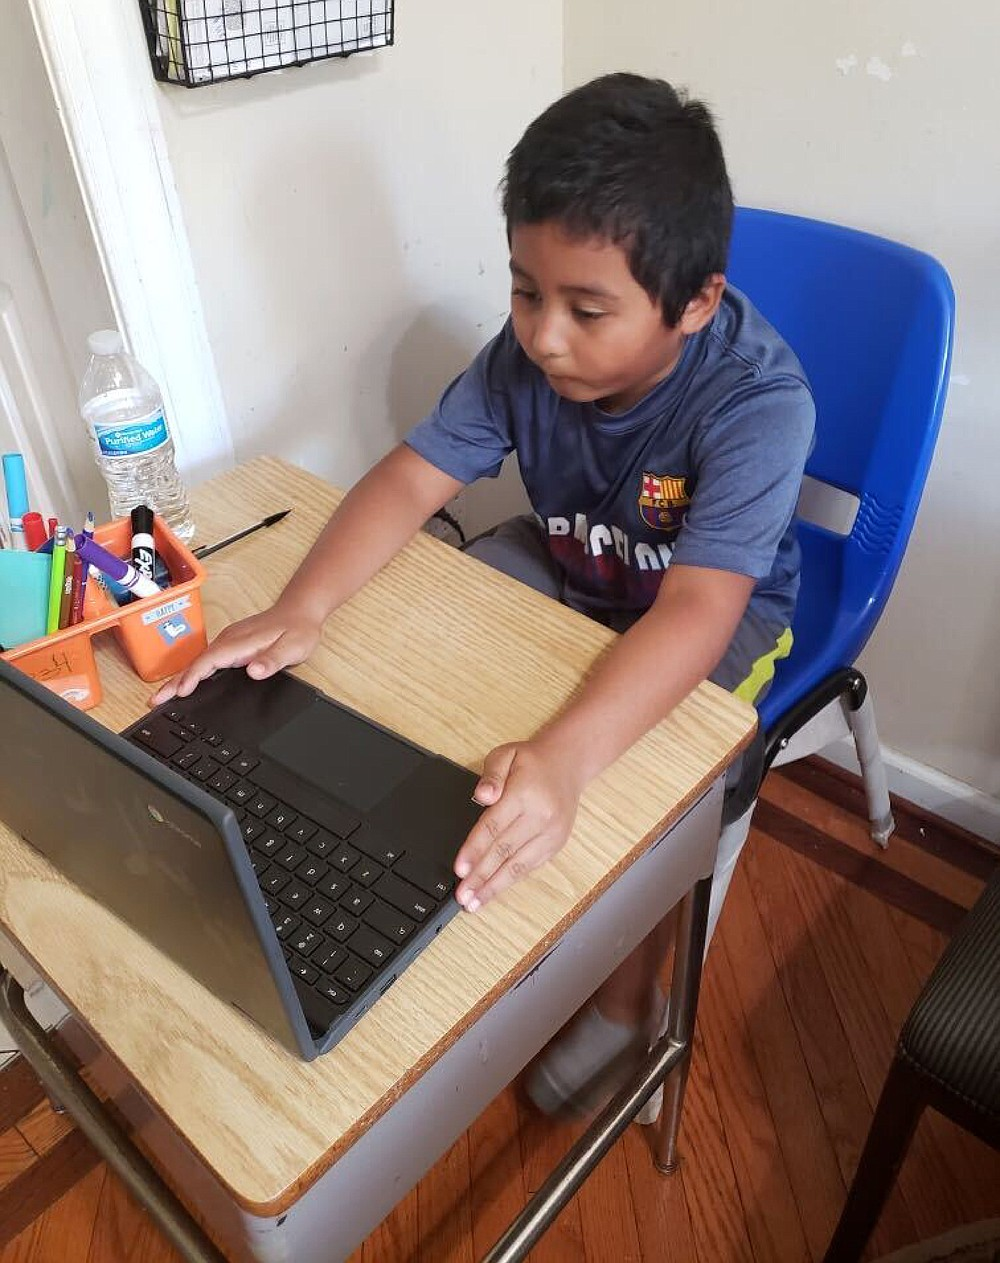 In this photo provided by Jessica Berrellez, student Jordan Dominguez Garcia attends a virtual class using his new desk, which was donated by the community, Thursday, Oct. 8, 2020, in Gaithersburg, Maryland. (Jessica Berrellez via AP)